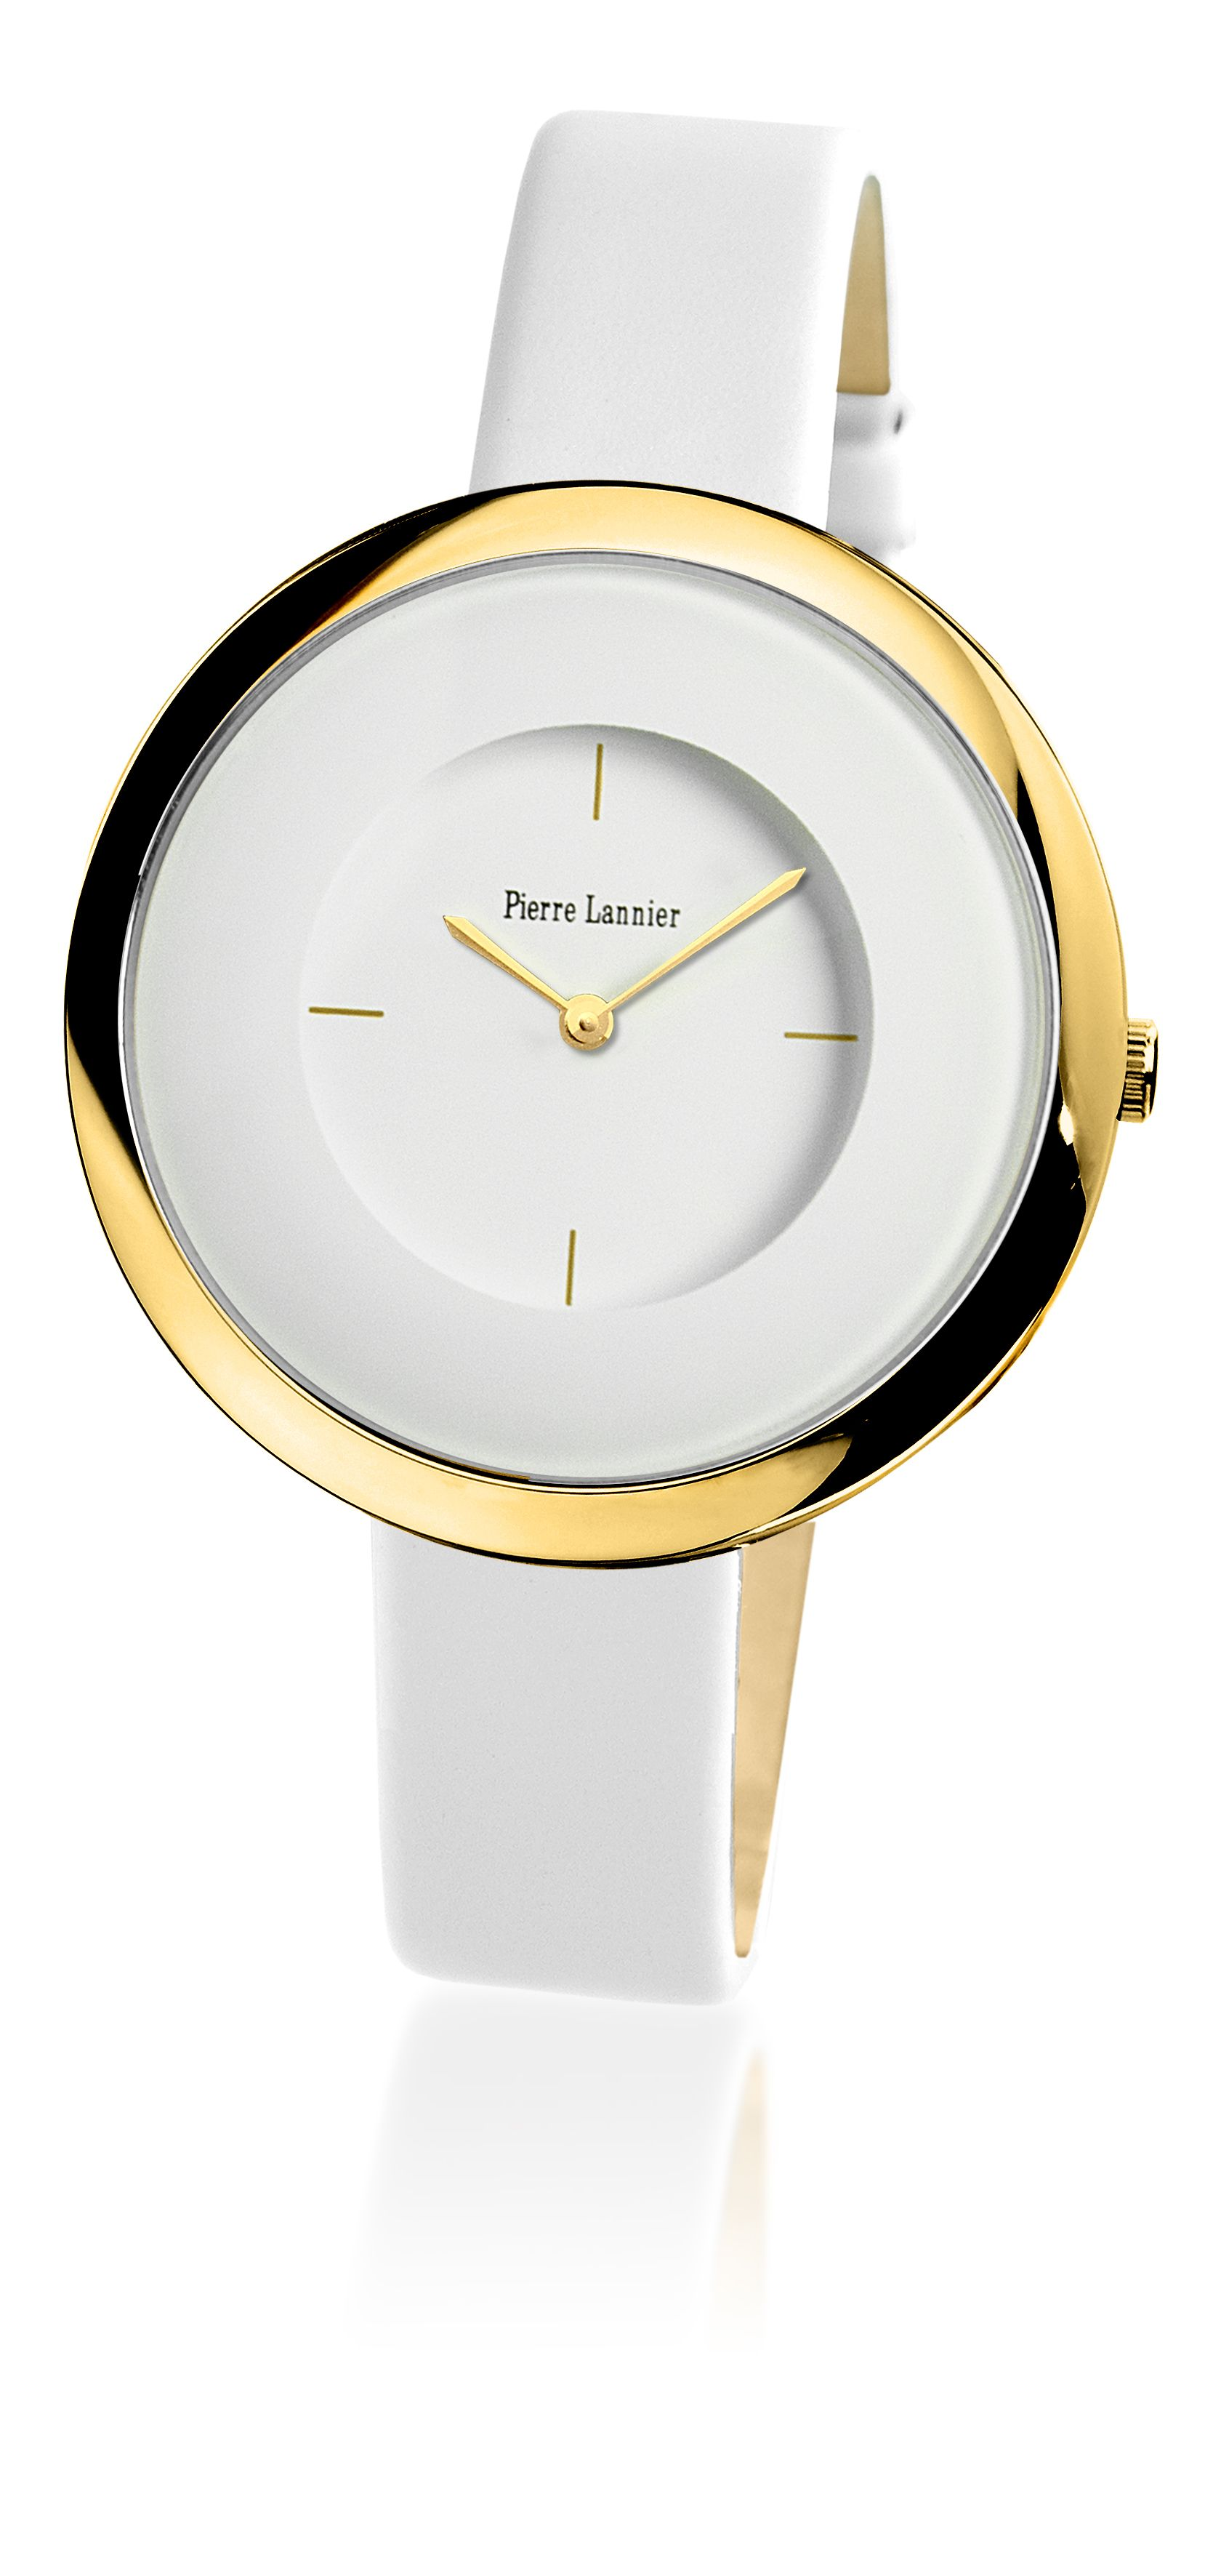 Pierre lannier paris dress watches for ladies retail price rs 6 000 rs 15 000 will be for Retail price watches